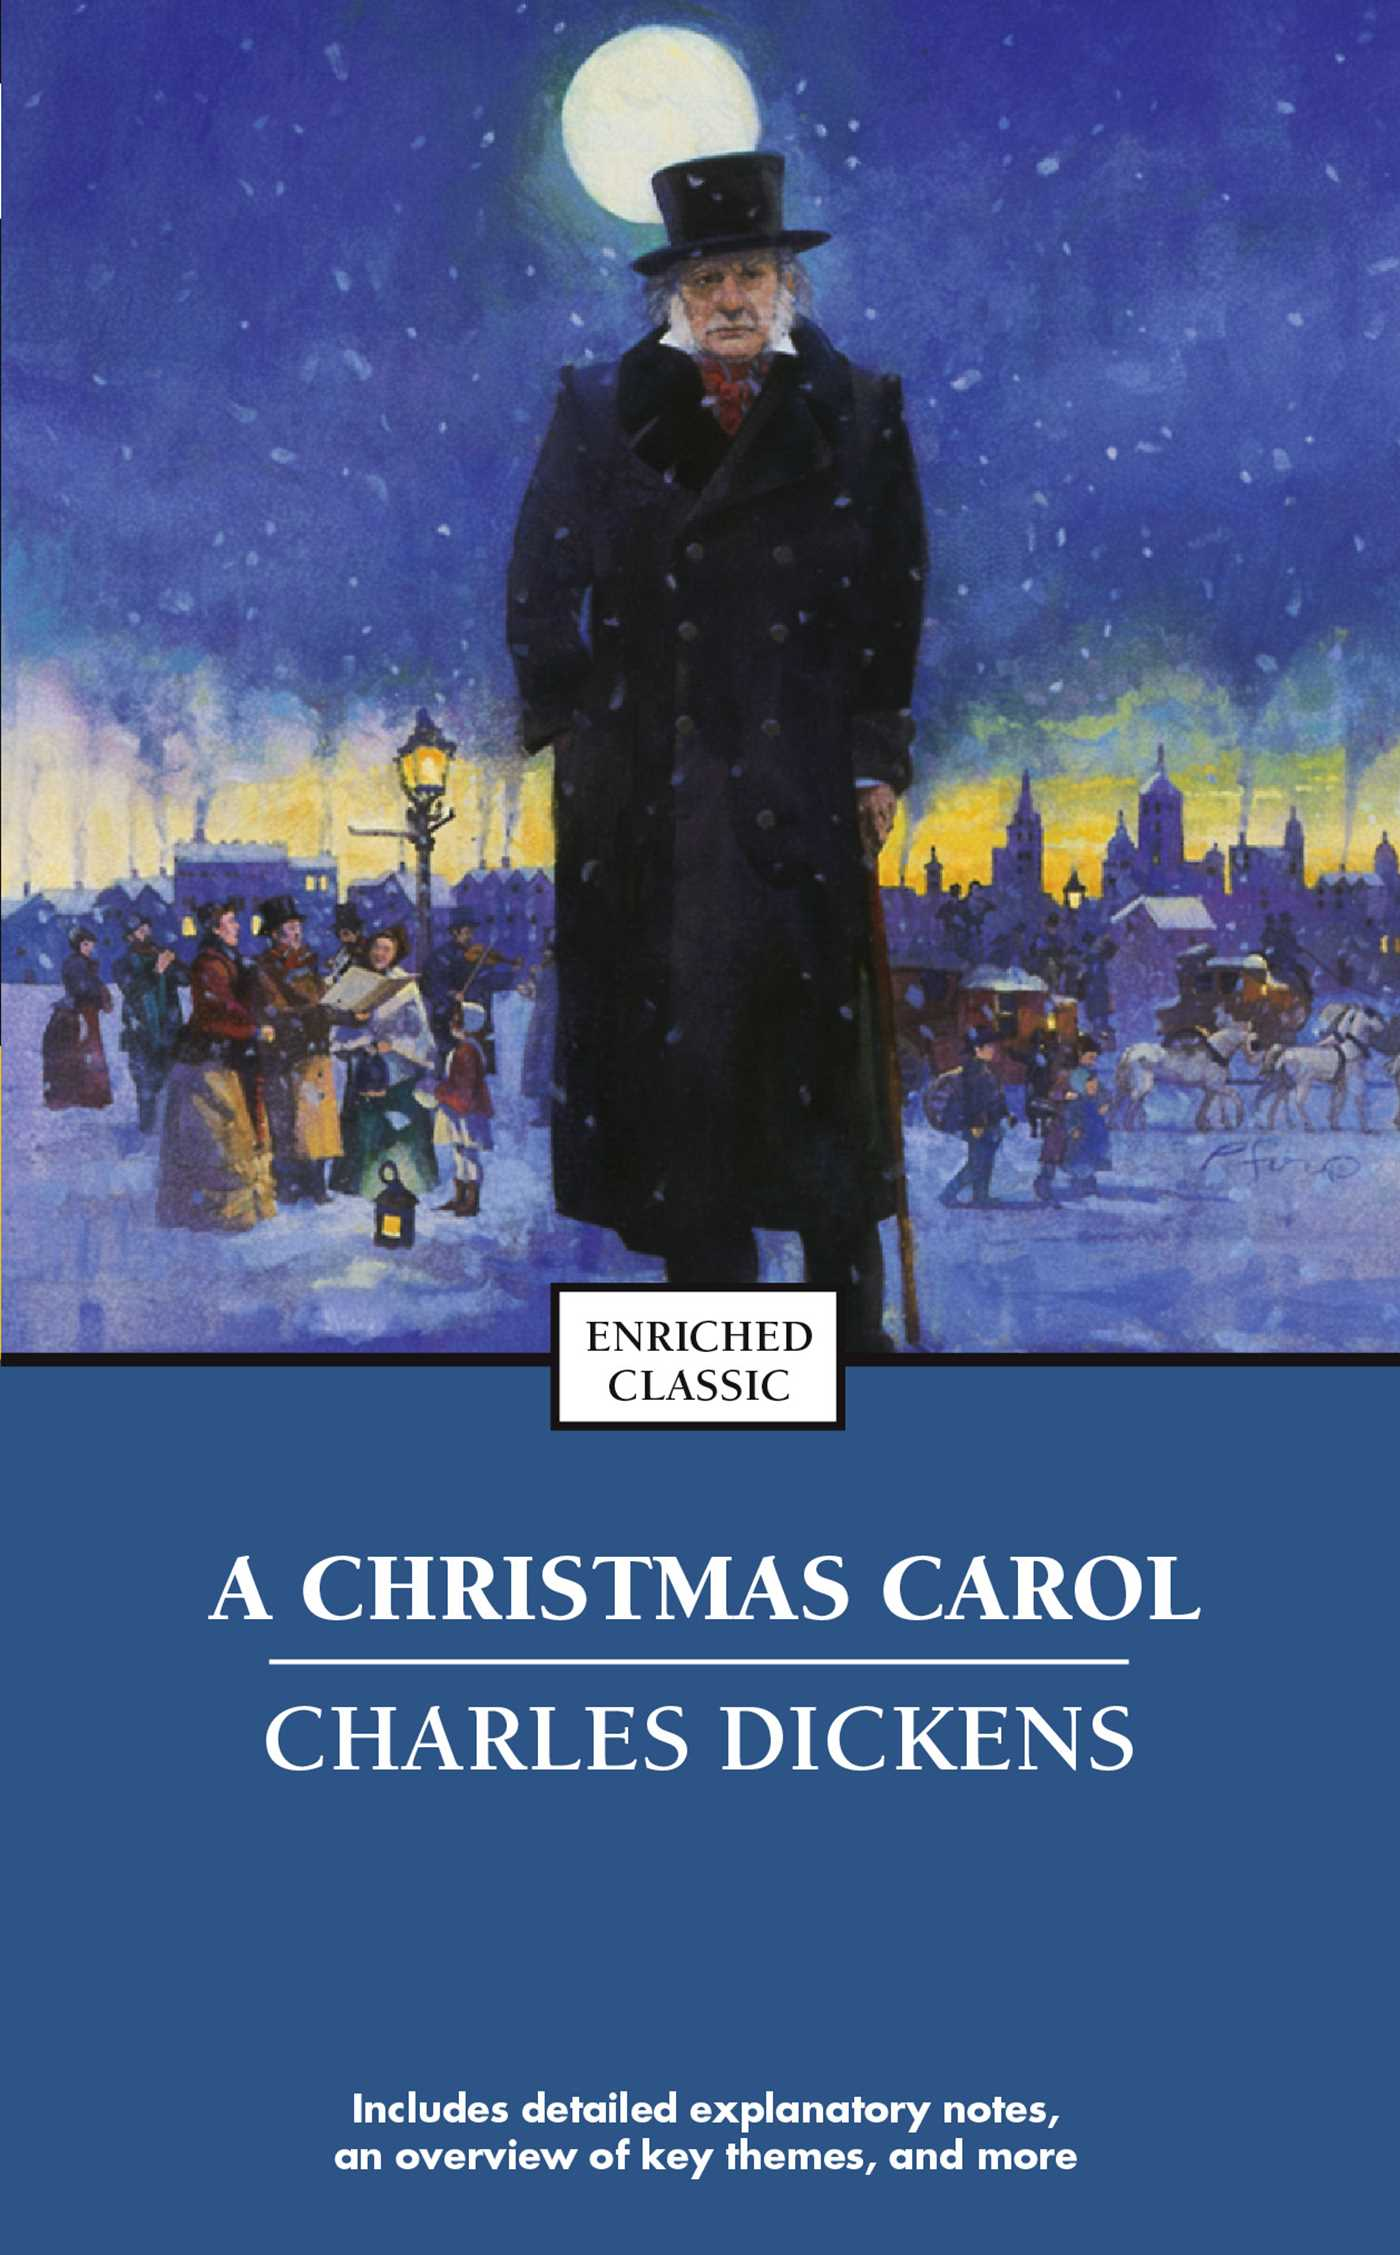 A Christmas Carol eBook by Charles Dickens | Official Publisher Page ...